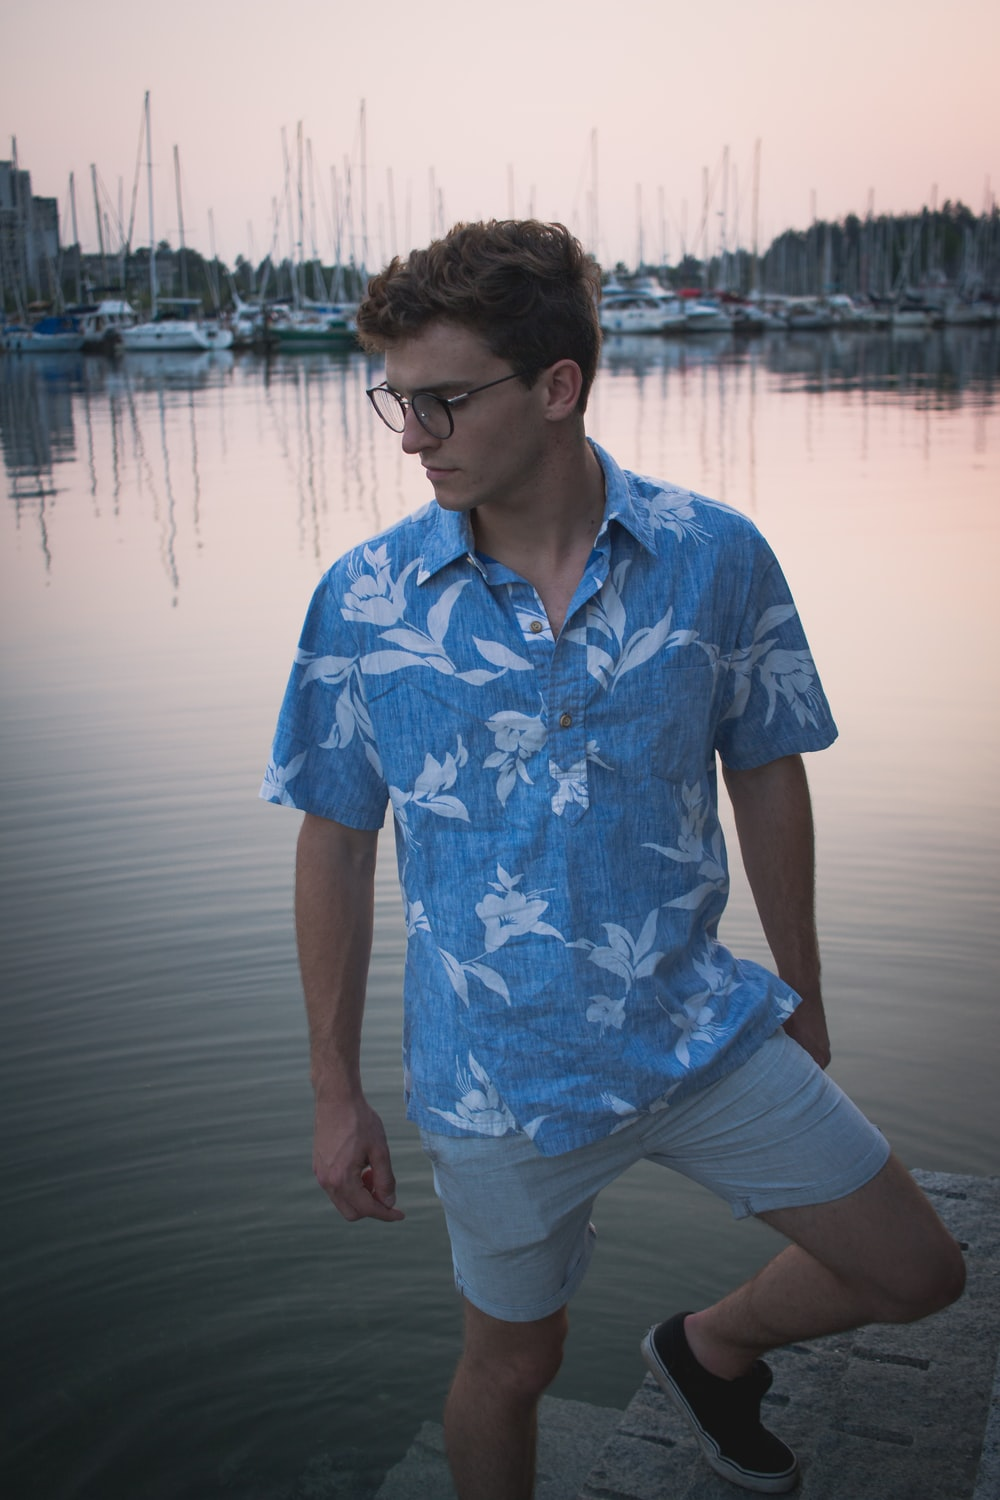 man in blue and white floral button up t-shirt standing near body of water during